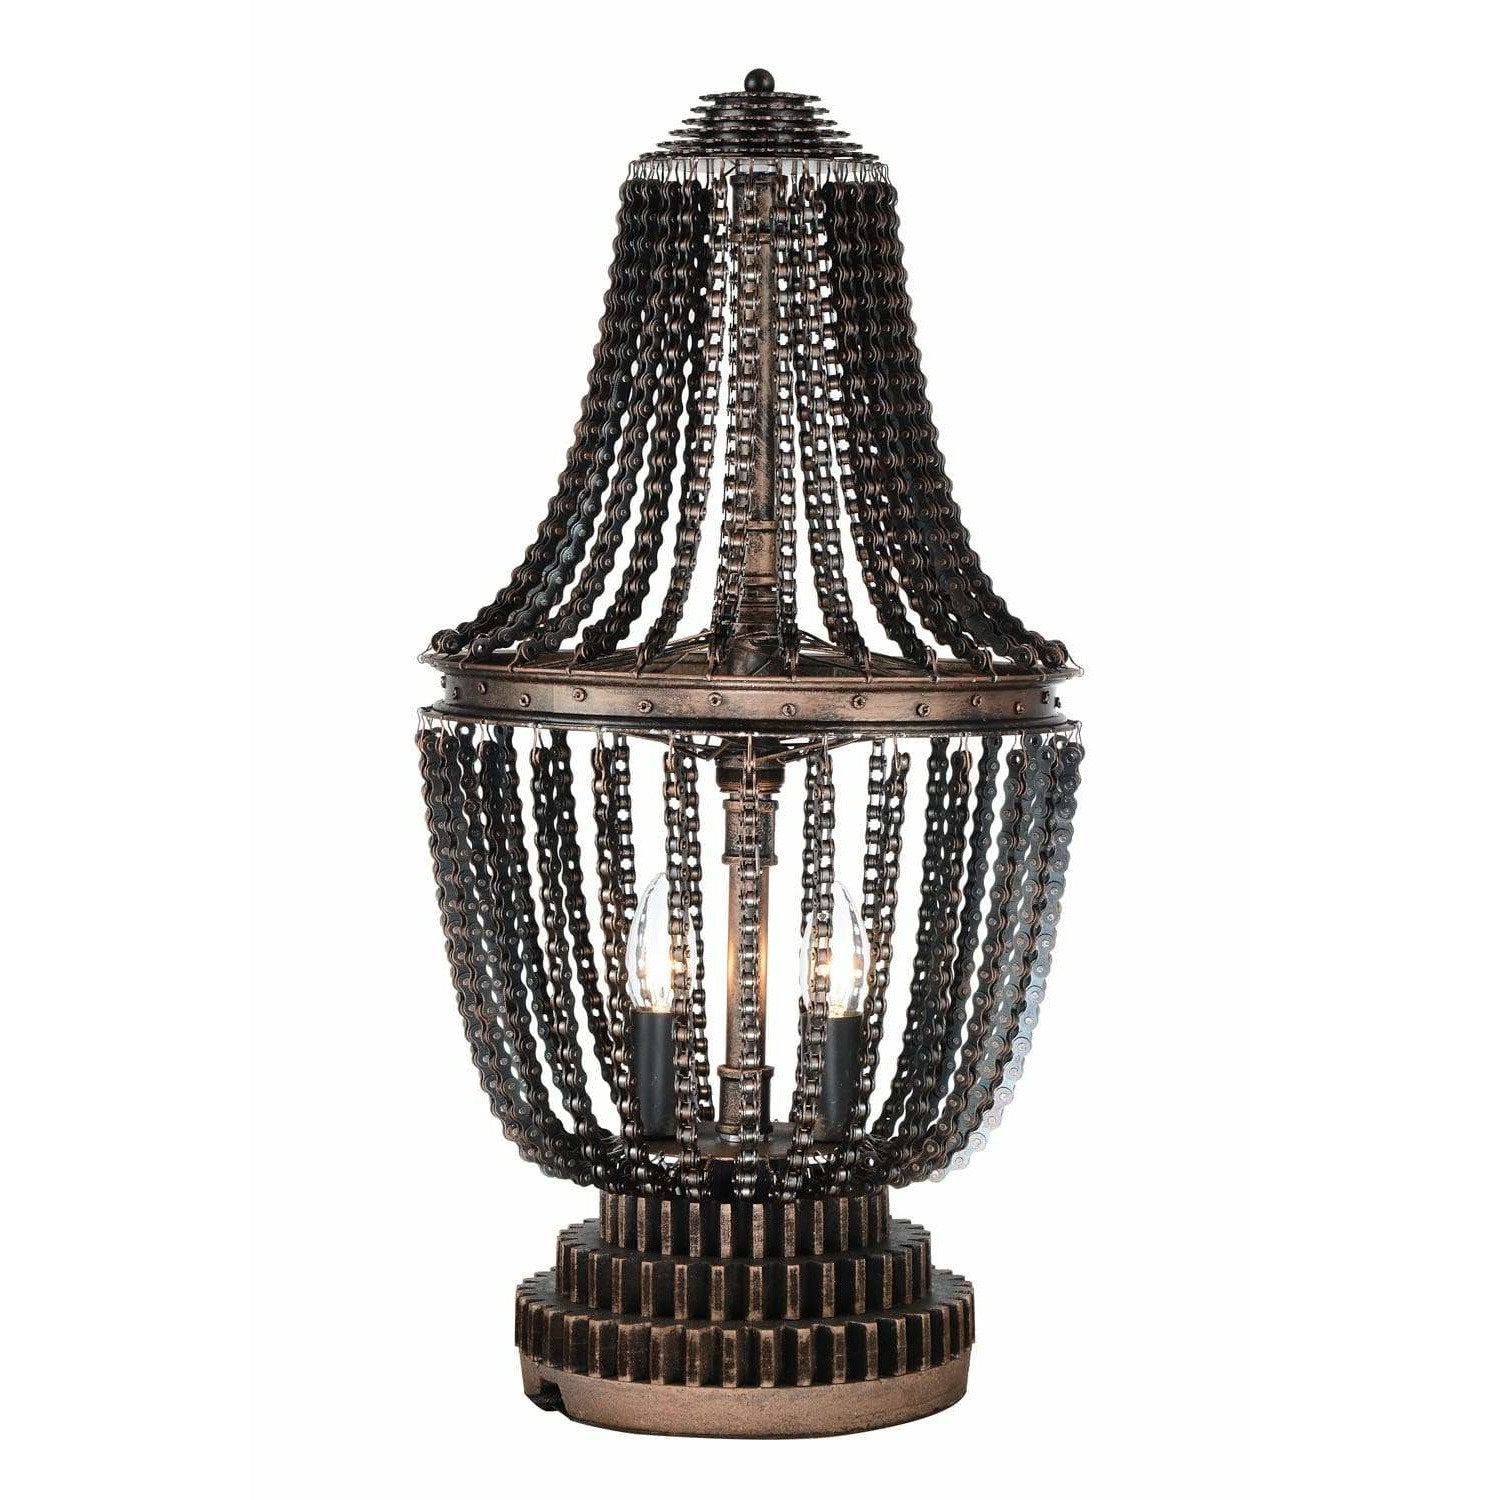 CWI Lighting Table Lamps Antique Bronze Kala 2 Light Table Lamp with Antique Bronze finish by CWI Lighting 9727T13-2-211